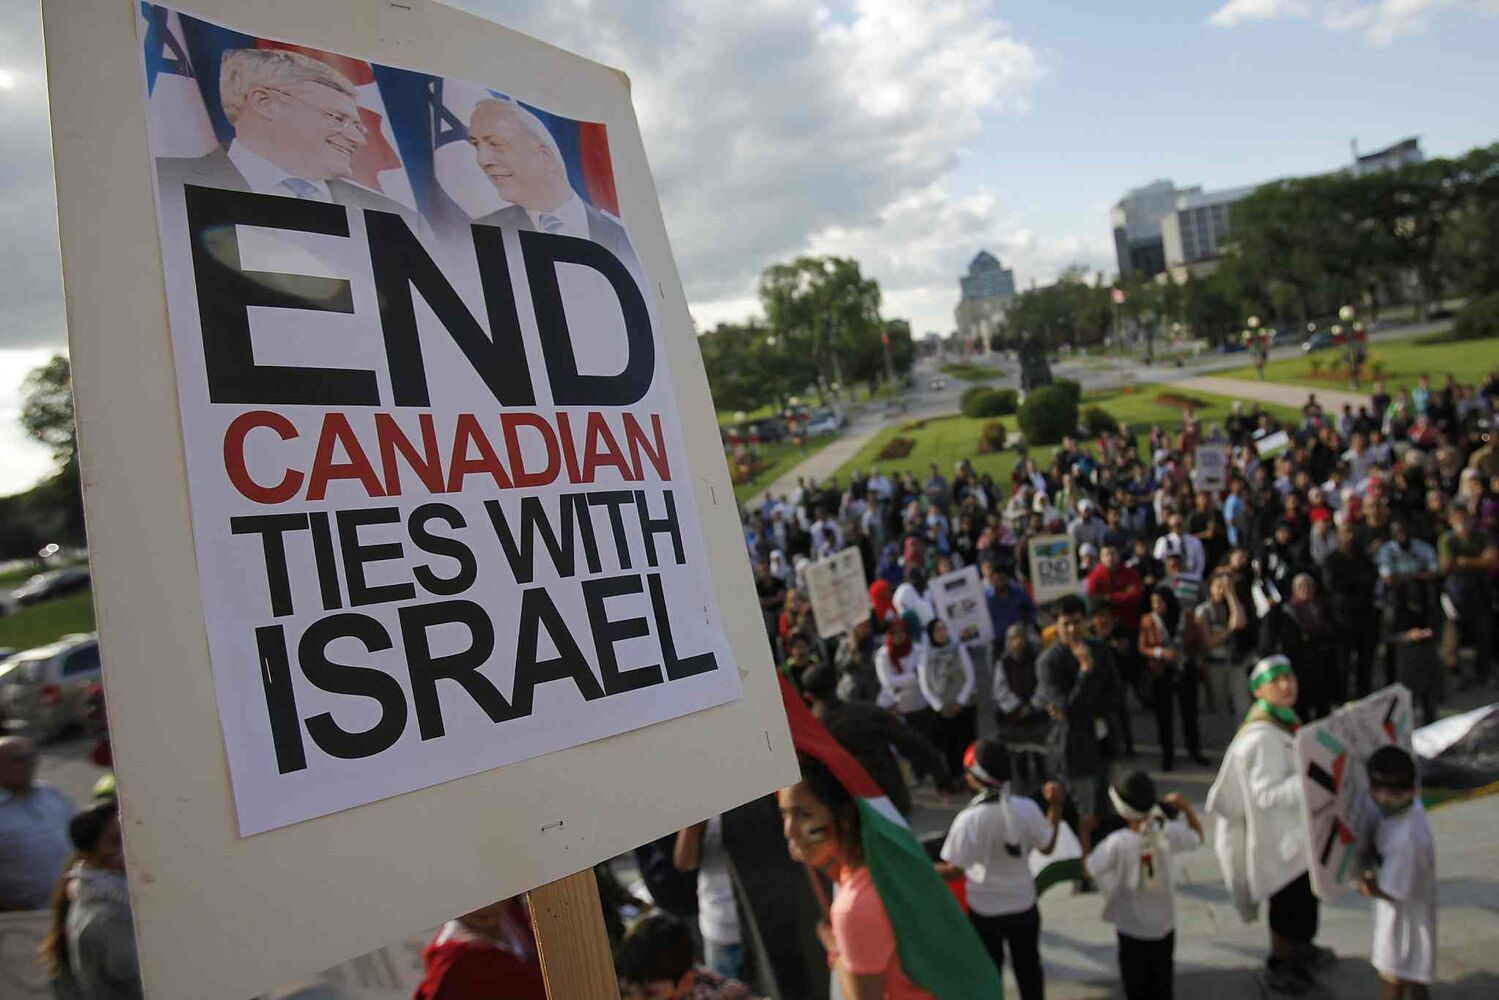 Palestinian supporters hold a peaceful rally at the Manitoba Legislature Monday, July 14, 2014. (John Woods / Winnipeg Free Press)